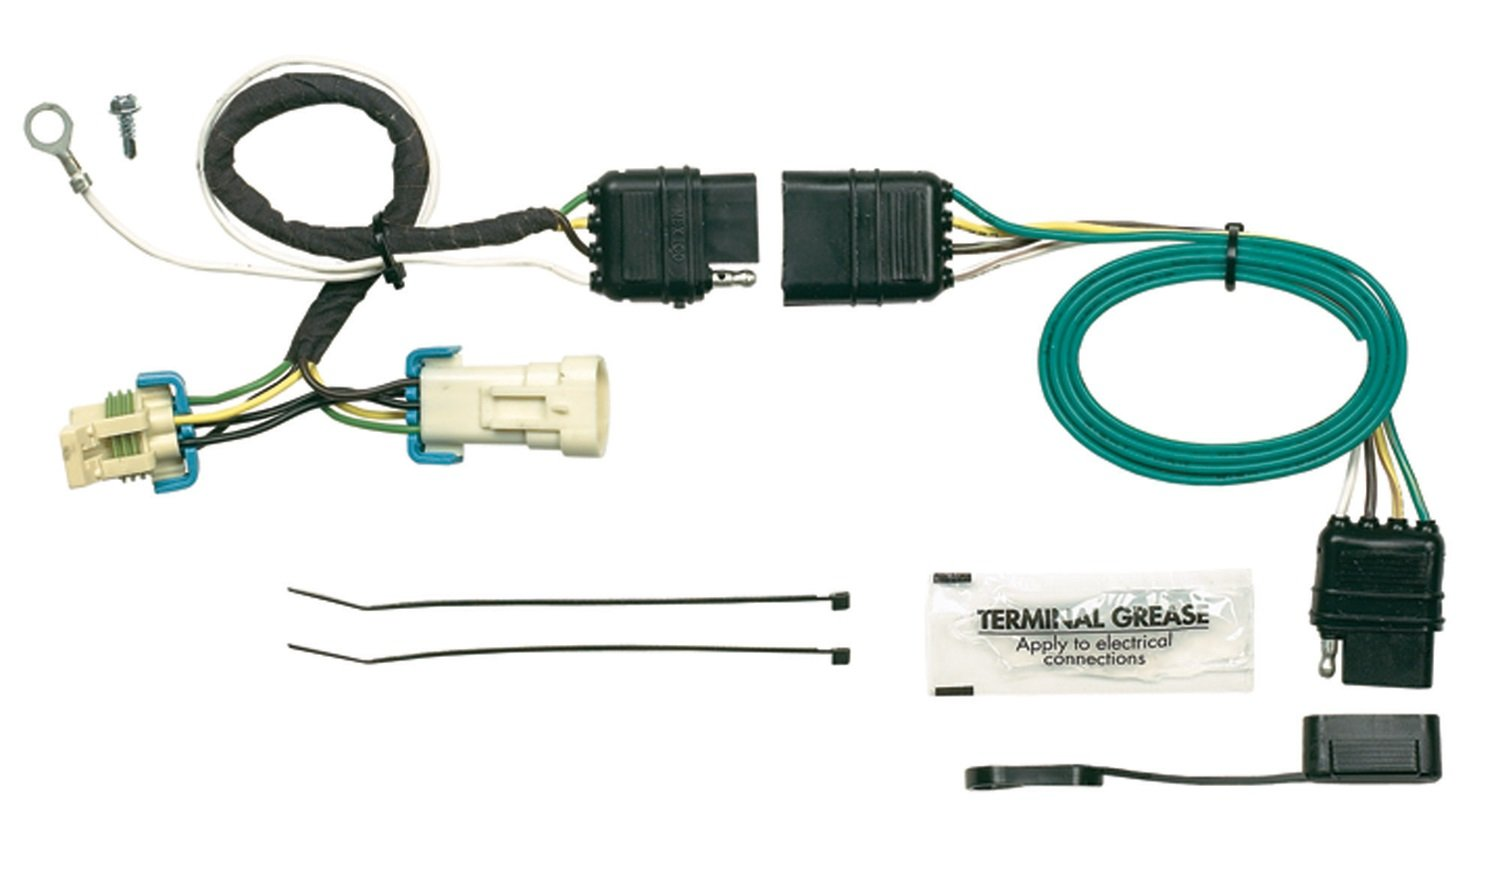 618X6OJbTkL._SL1500_ 98 s10 trailer wiring harness 5 pin trailer wiring harness Utility Trailer Wire Harness at gsmportal.co